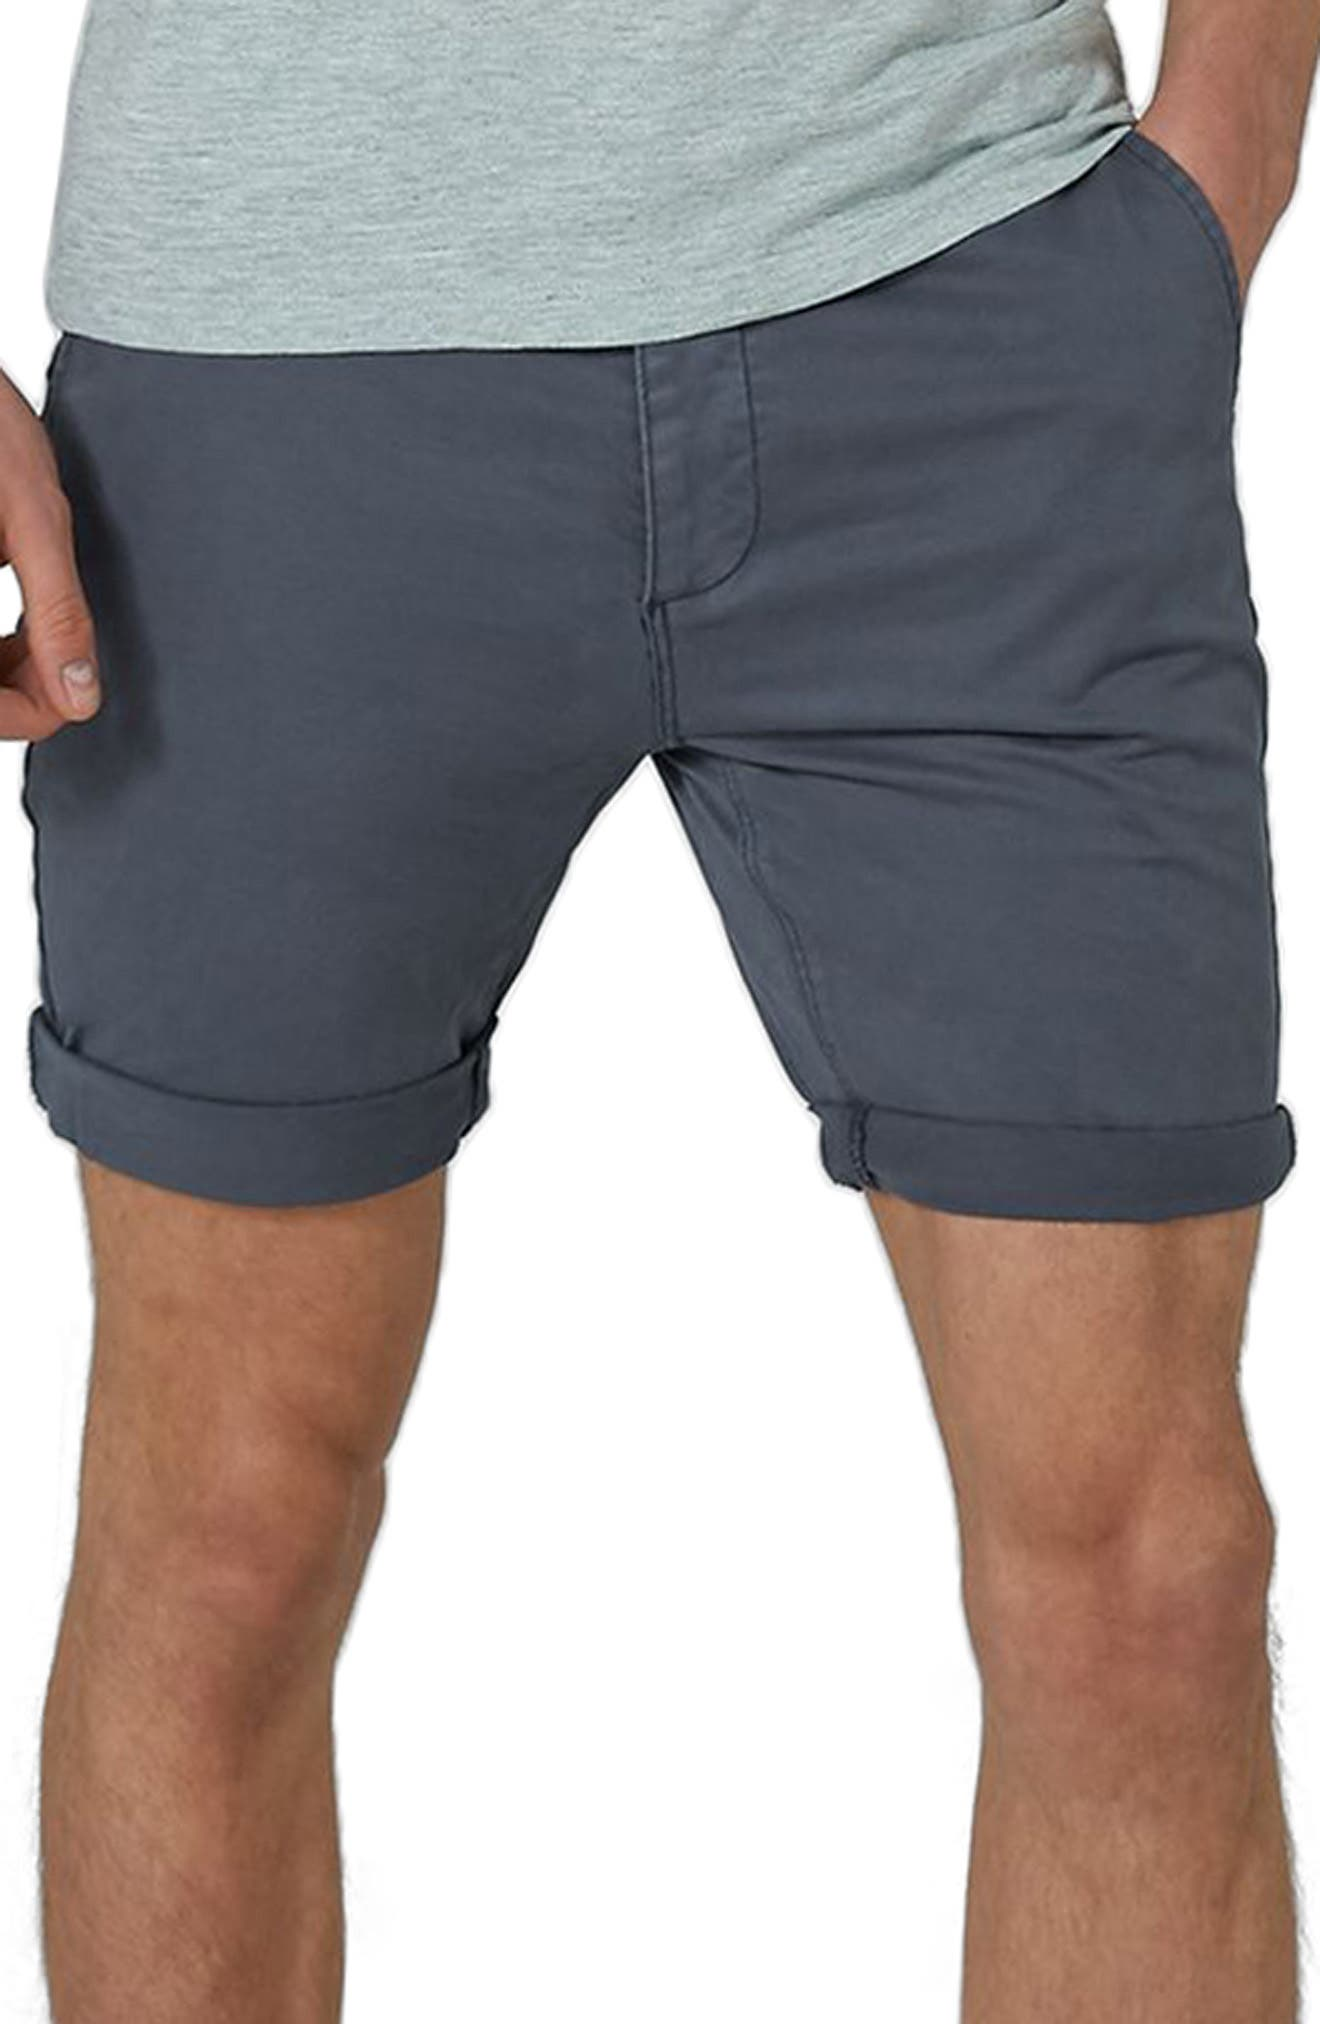 Stretch Skinny Chino Shorts,                             Main thumbnail 1, color,                             401